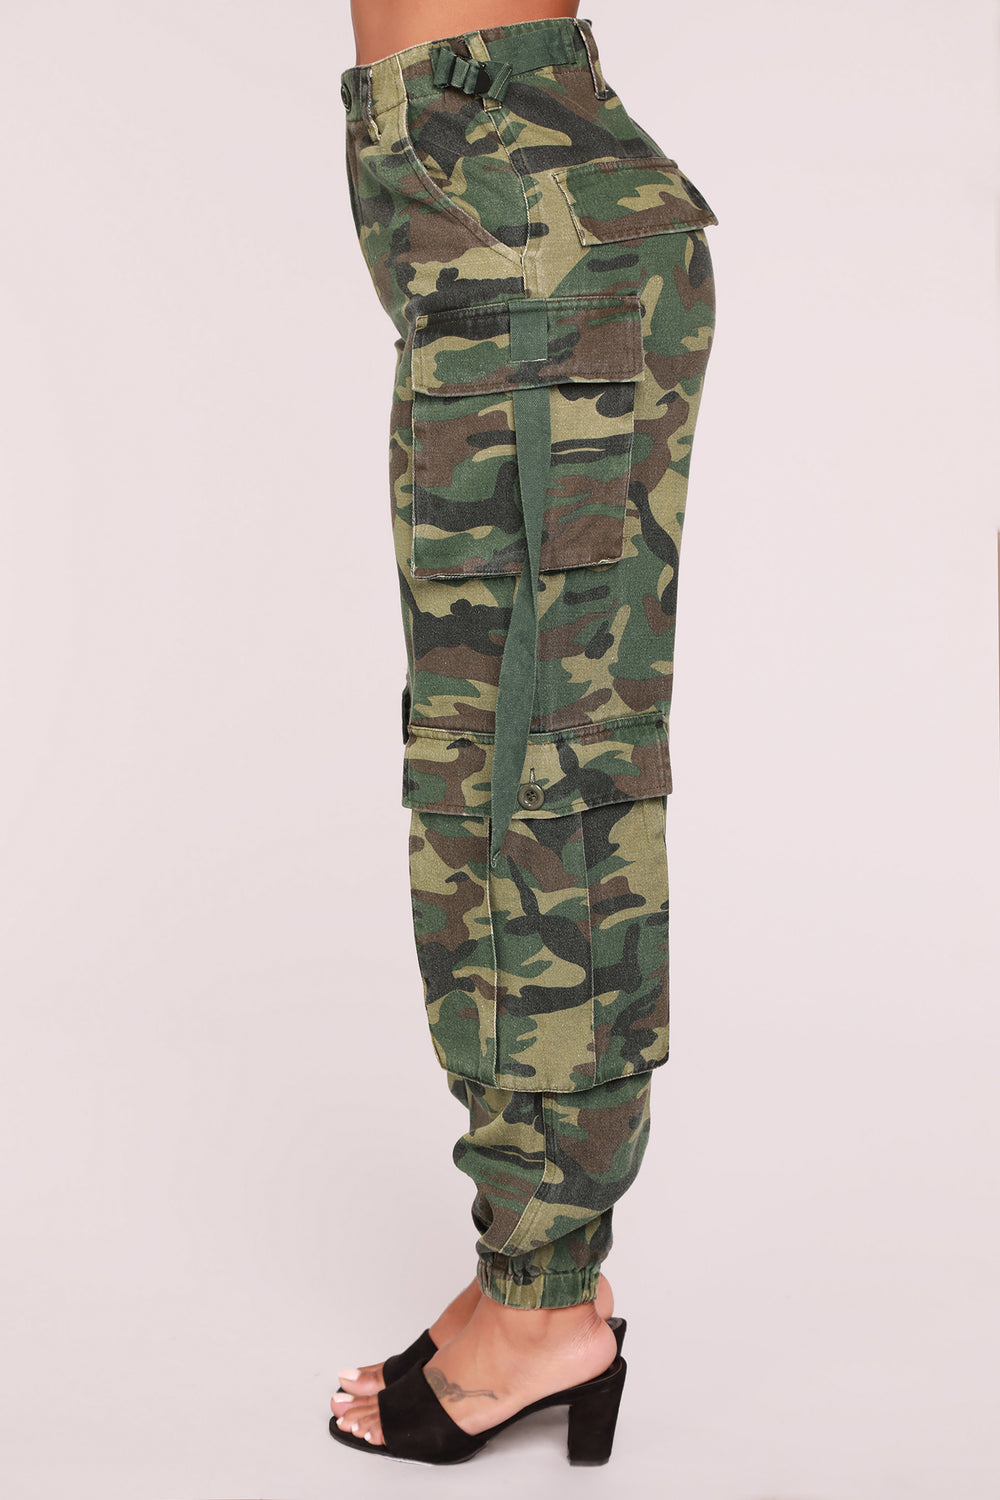 Commander Of Attention Cargo Pants - Olive